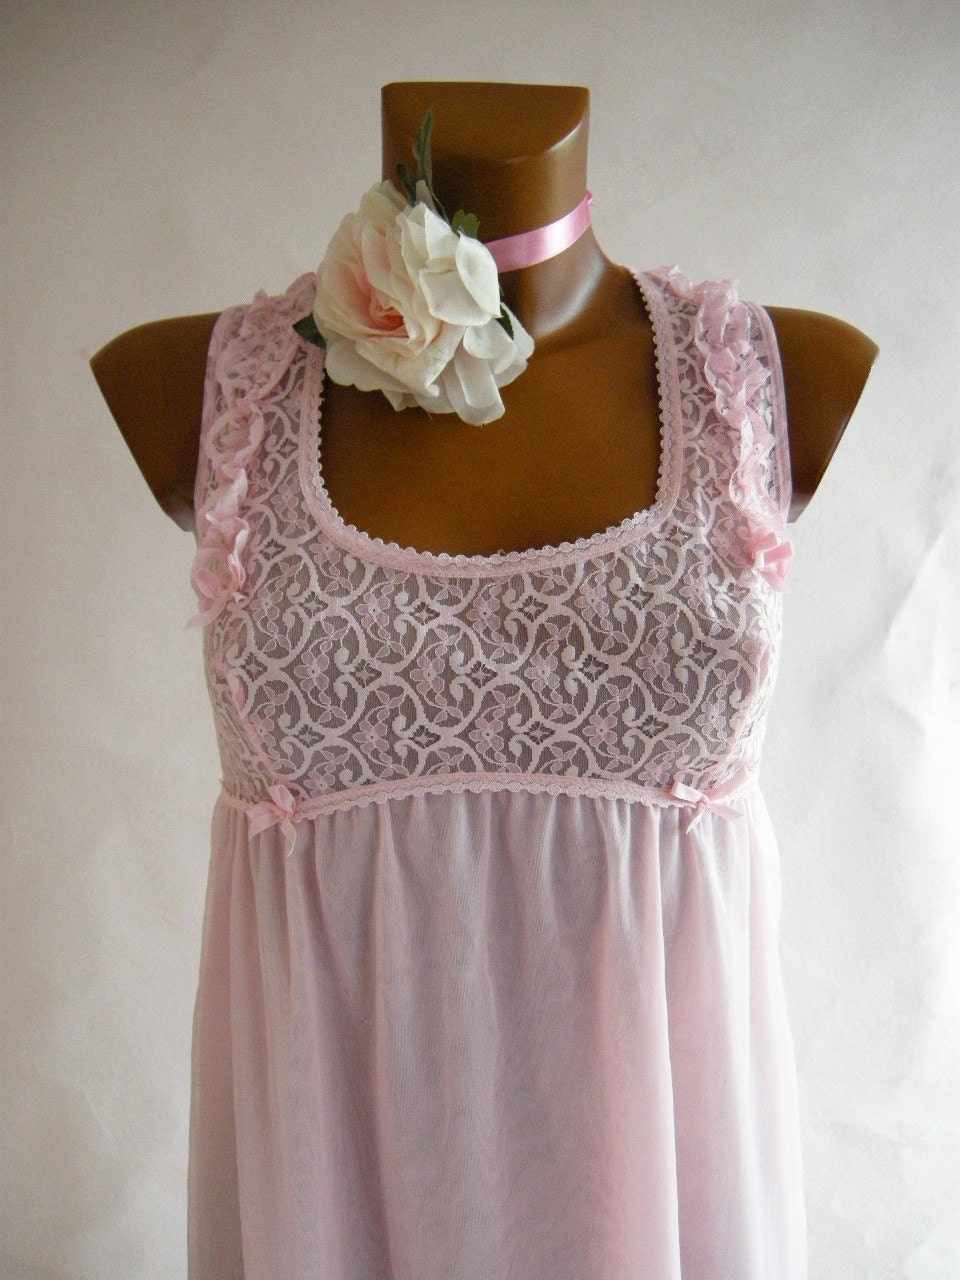 Pink Chiffon Vintage 60s Babydoll Nighty Lace by empressjade from etsy.com